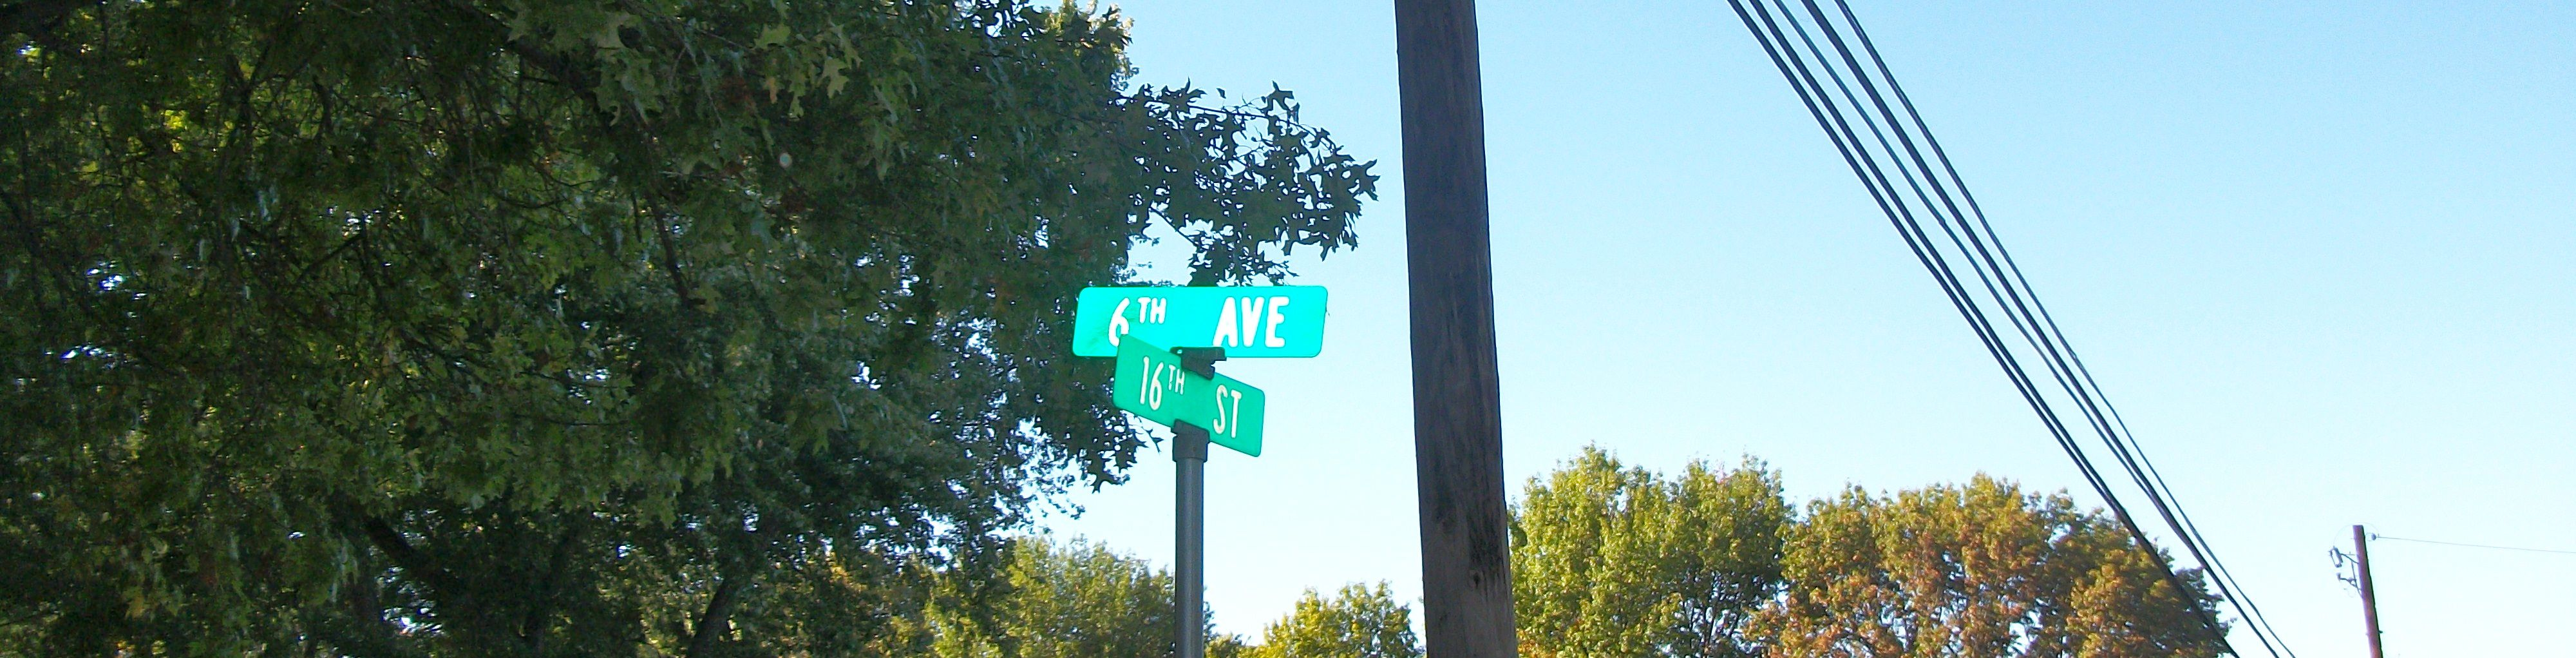 A sign without an Avenue